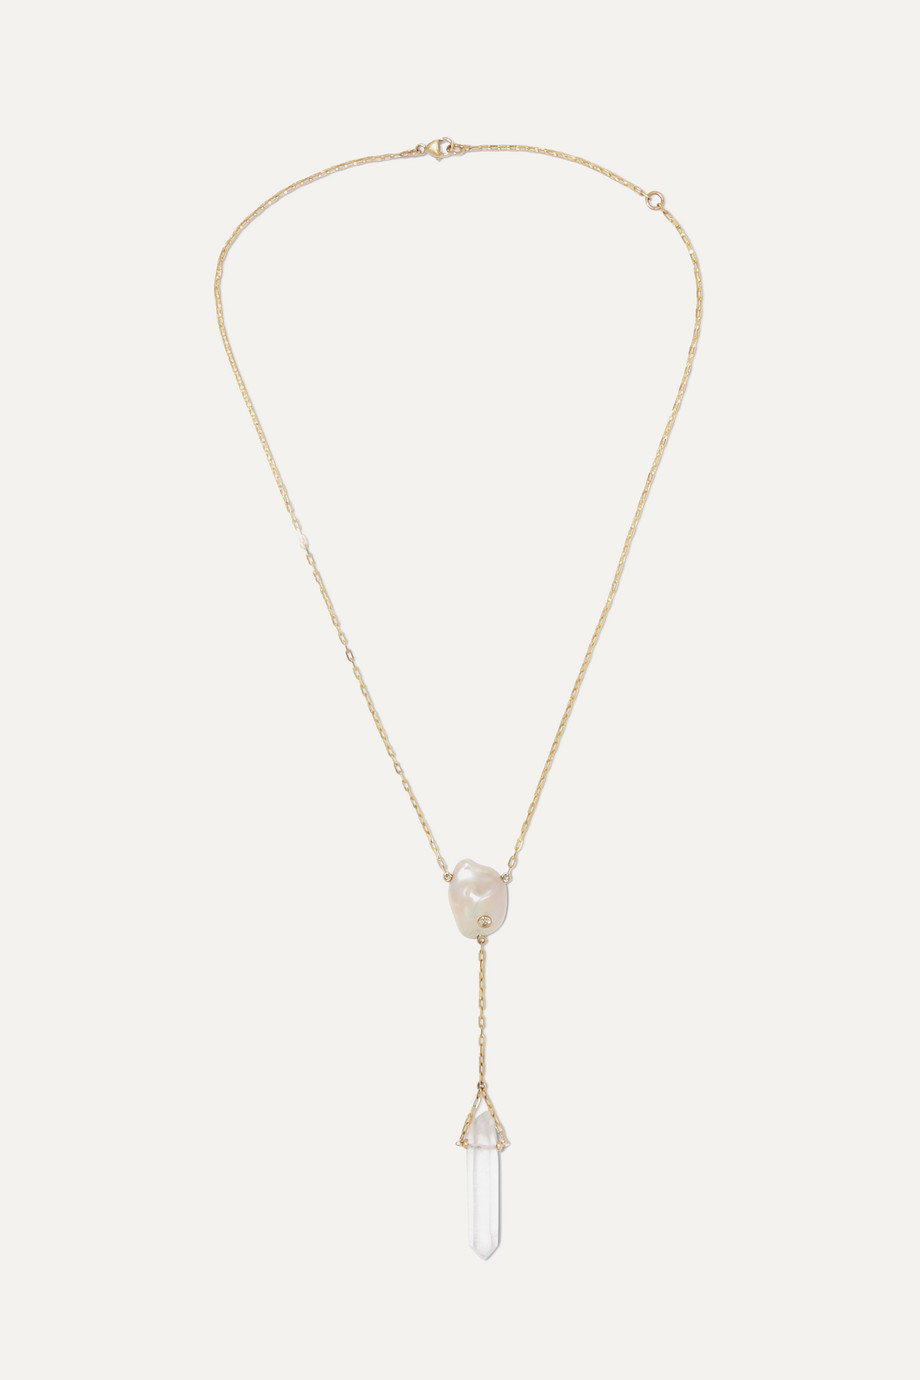 Harris Zhu 14-karat gold multi-stone necklace